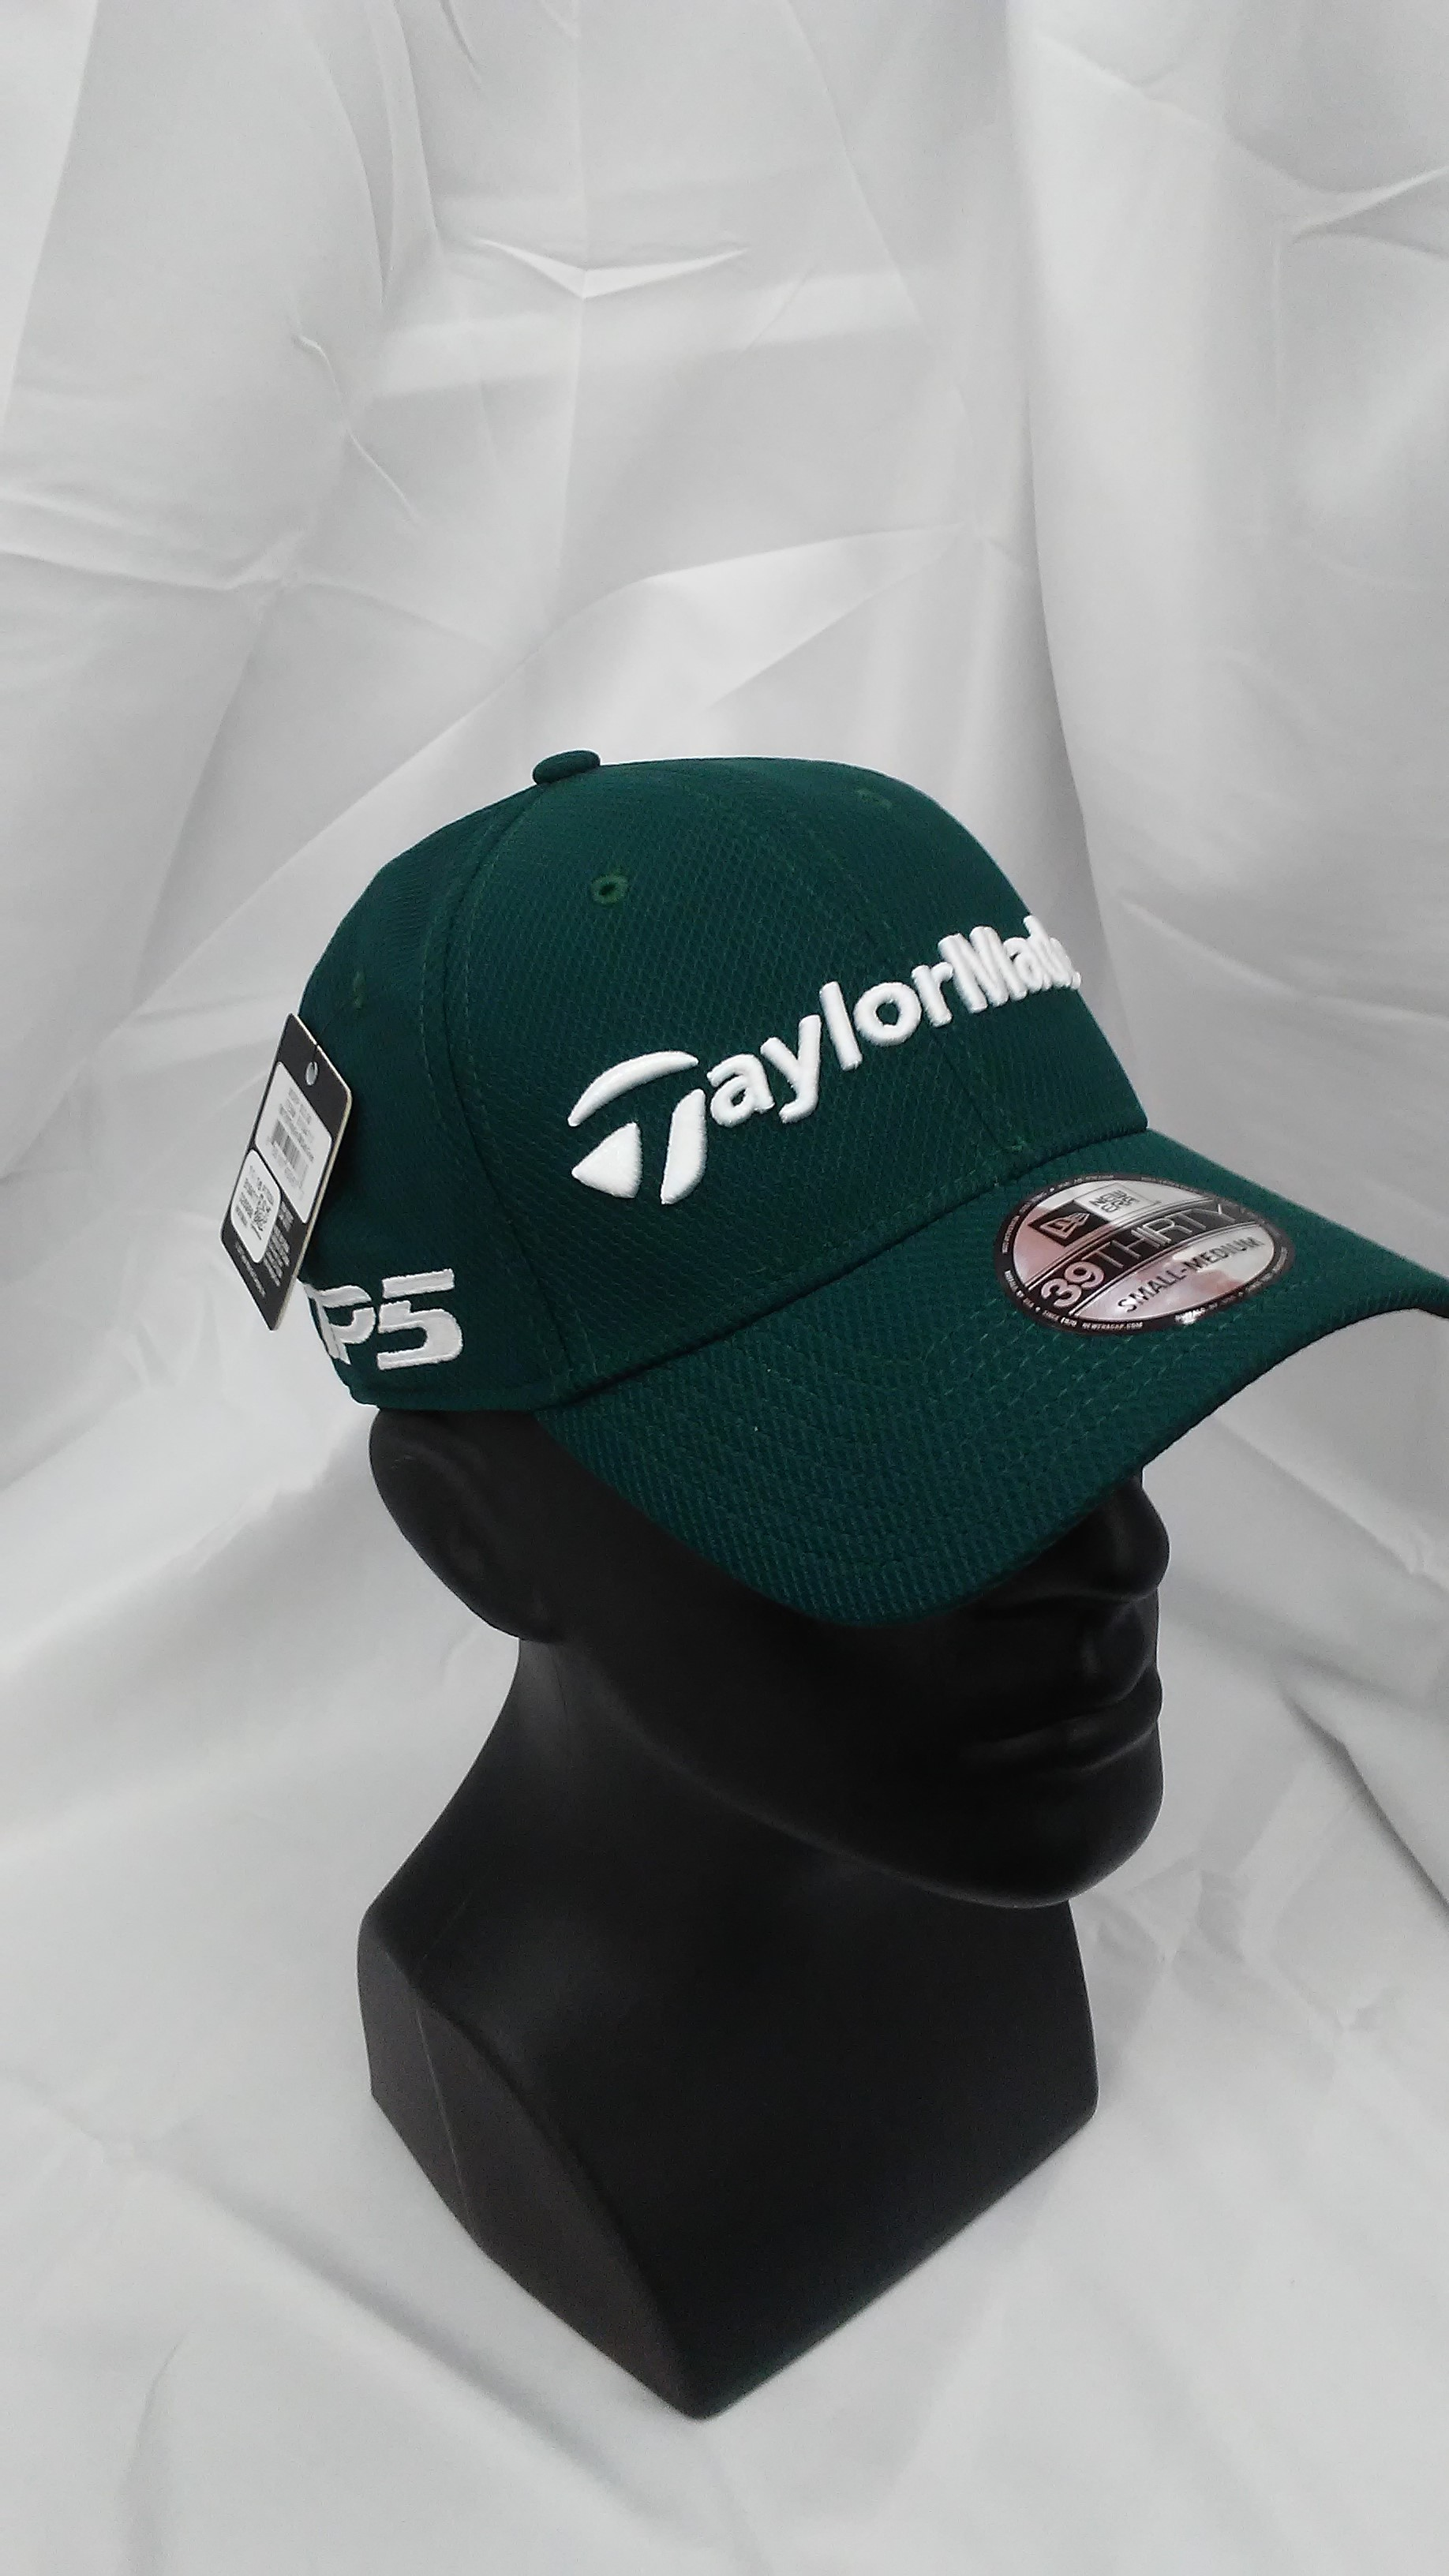 6d2310d79f5 Visit our eBay Store for more great deals  Hurricane Golf New TaylorMade  Tour 39Thirty New Era Fitted Cap Green S M BUY IT NOW  9.99!